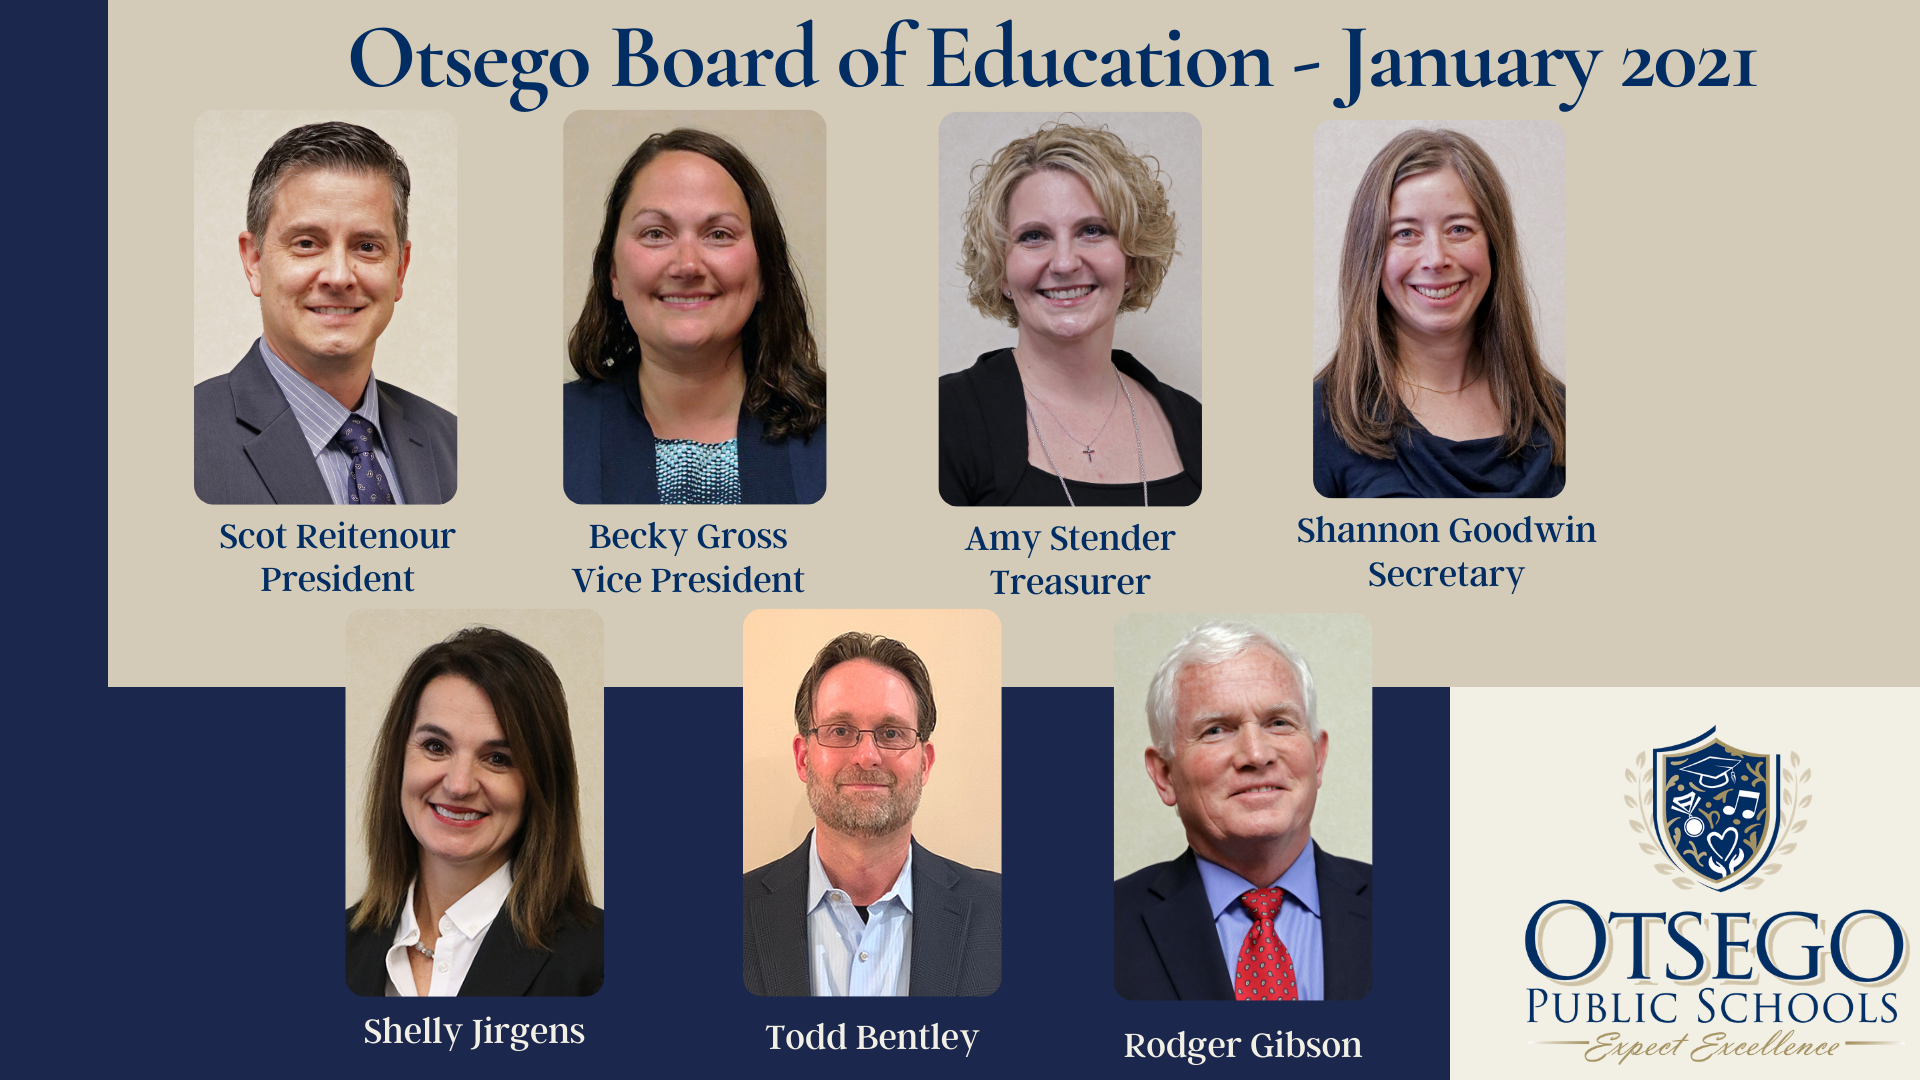 photo of board members and their titles as of Jan 2021